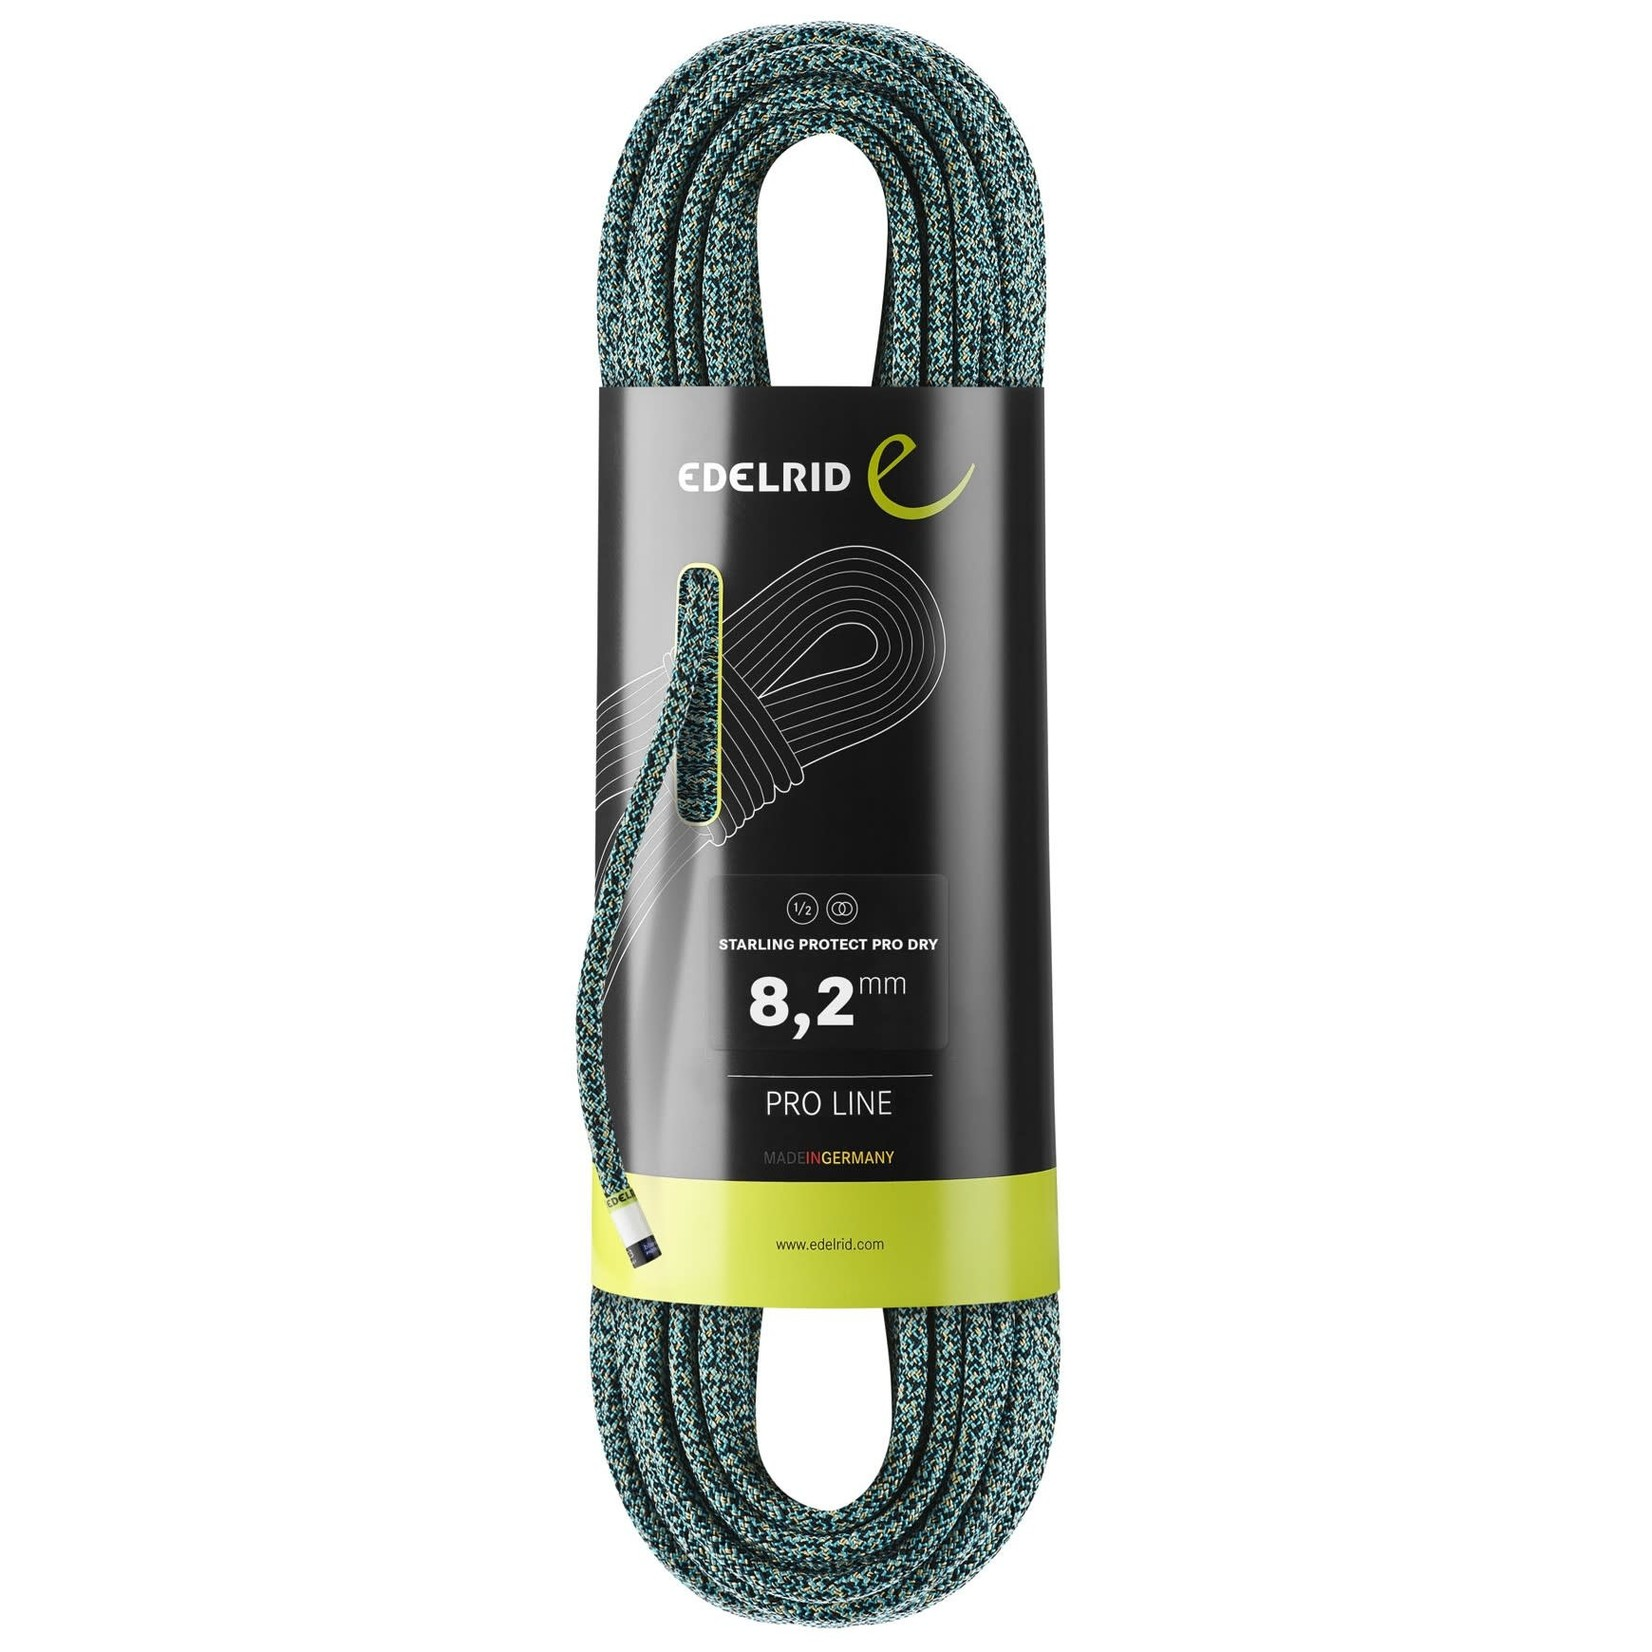 Edelrid Corde Edelrid Starling Protect Pro Dry 8.2 mm